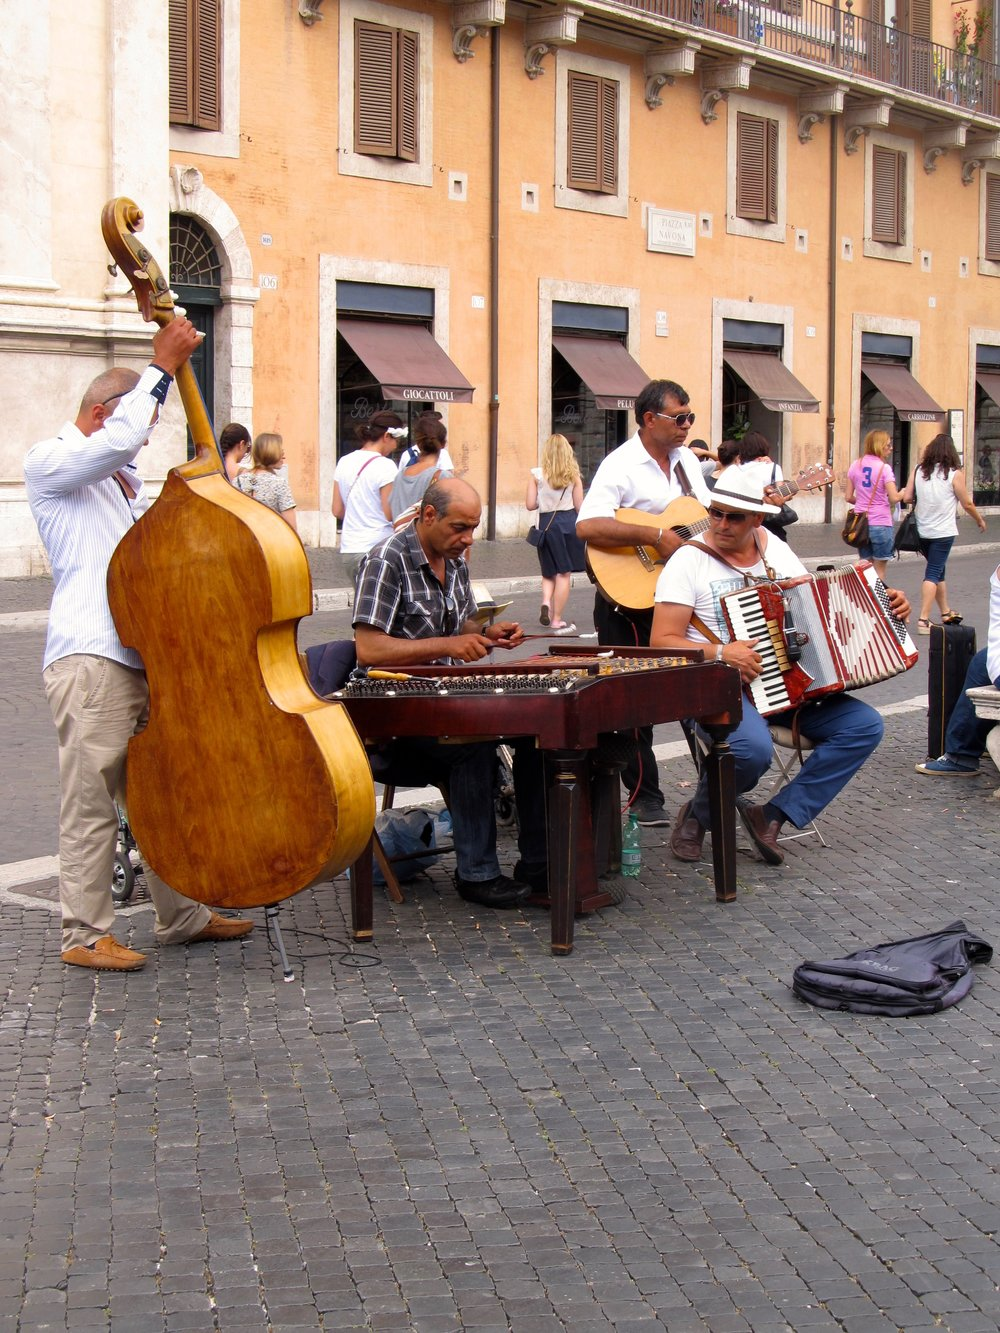 Lively music in Piazza Nivona